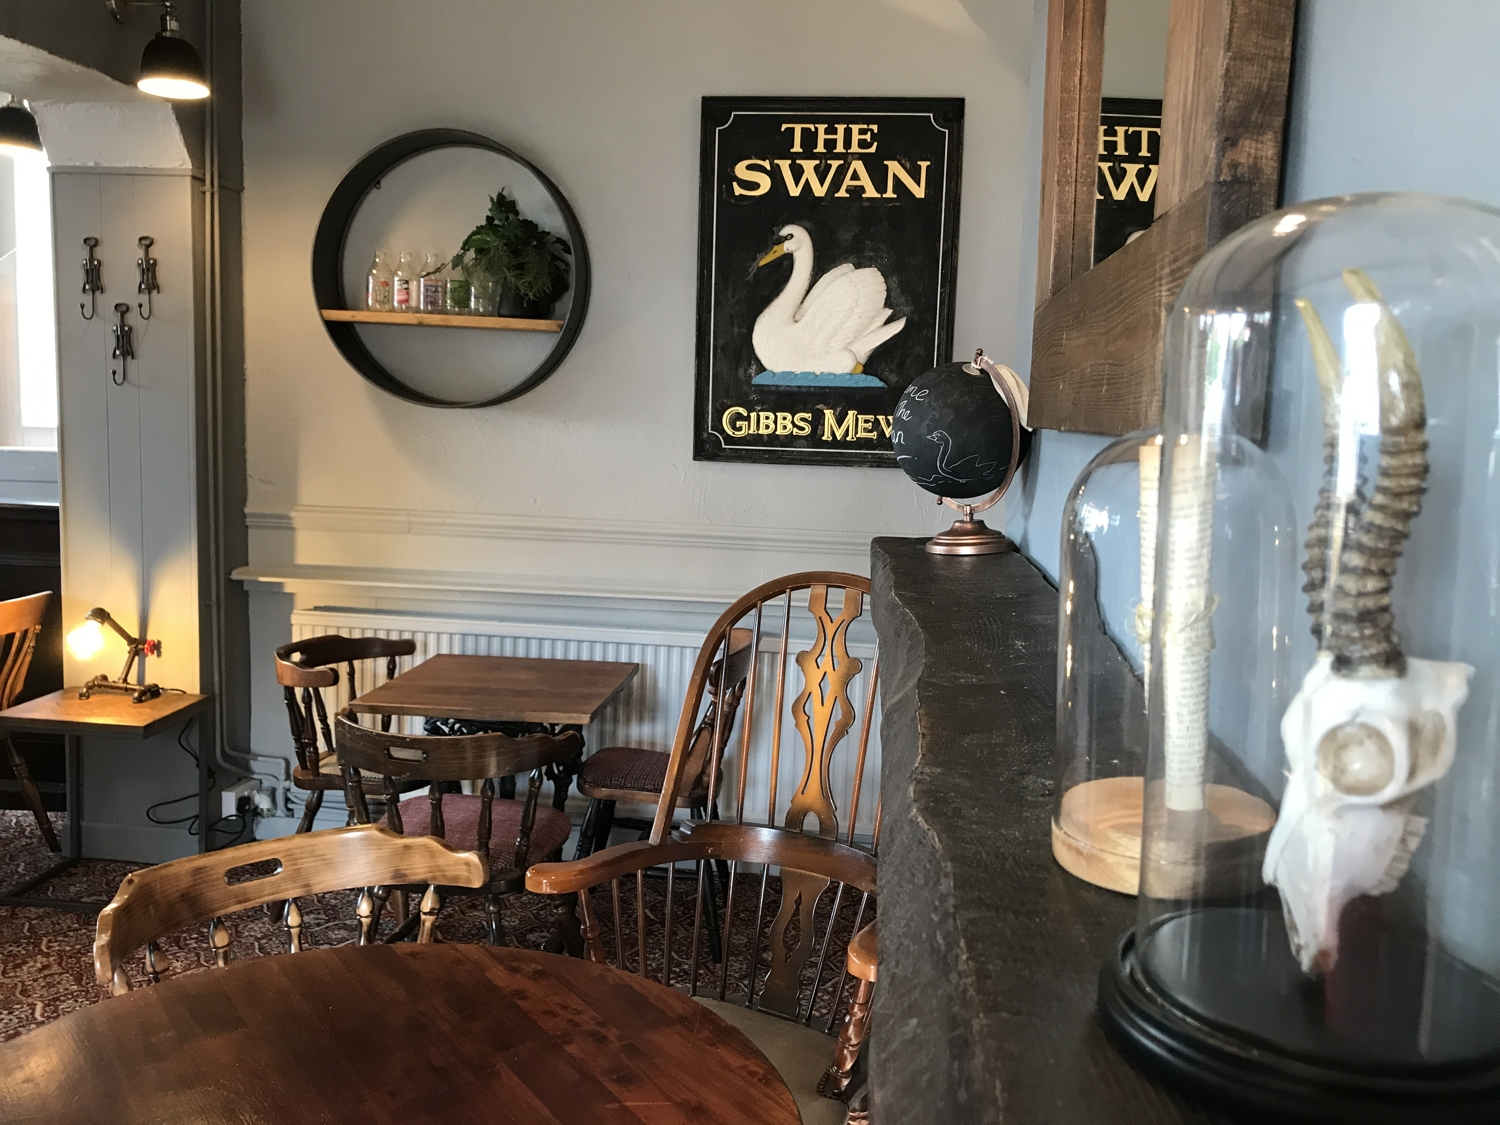 The Swan Picture